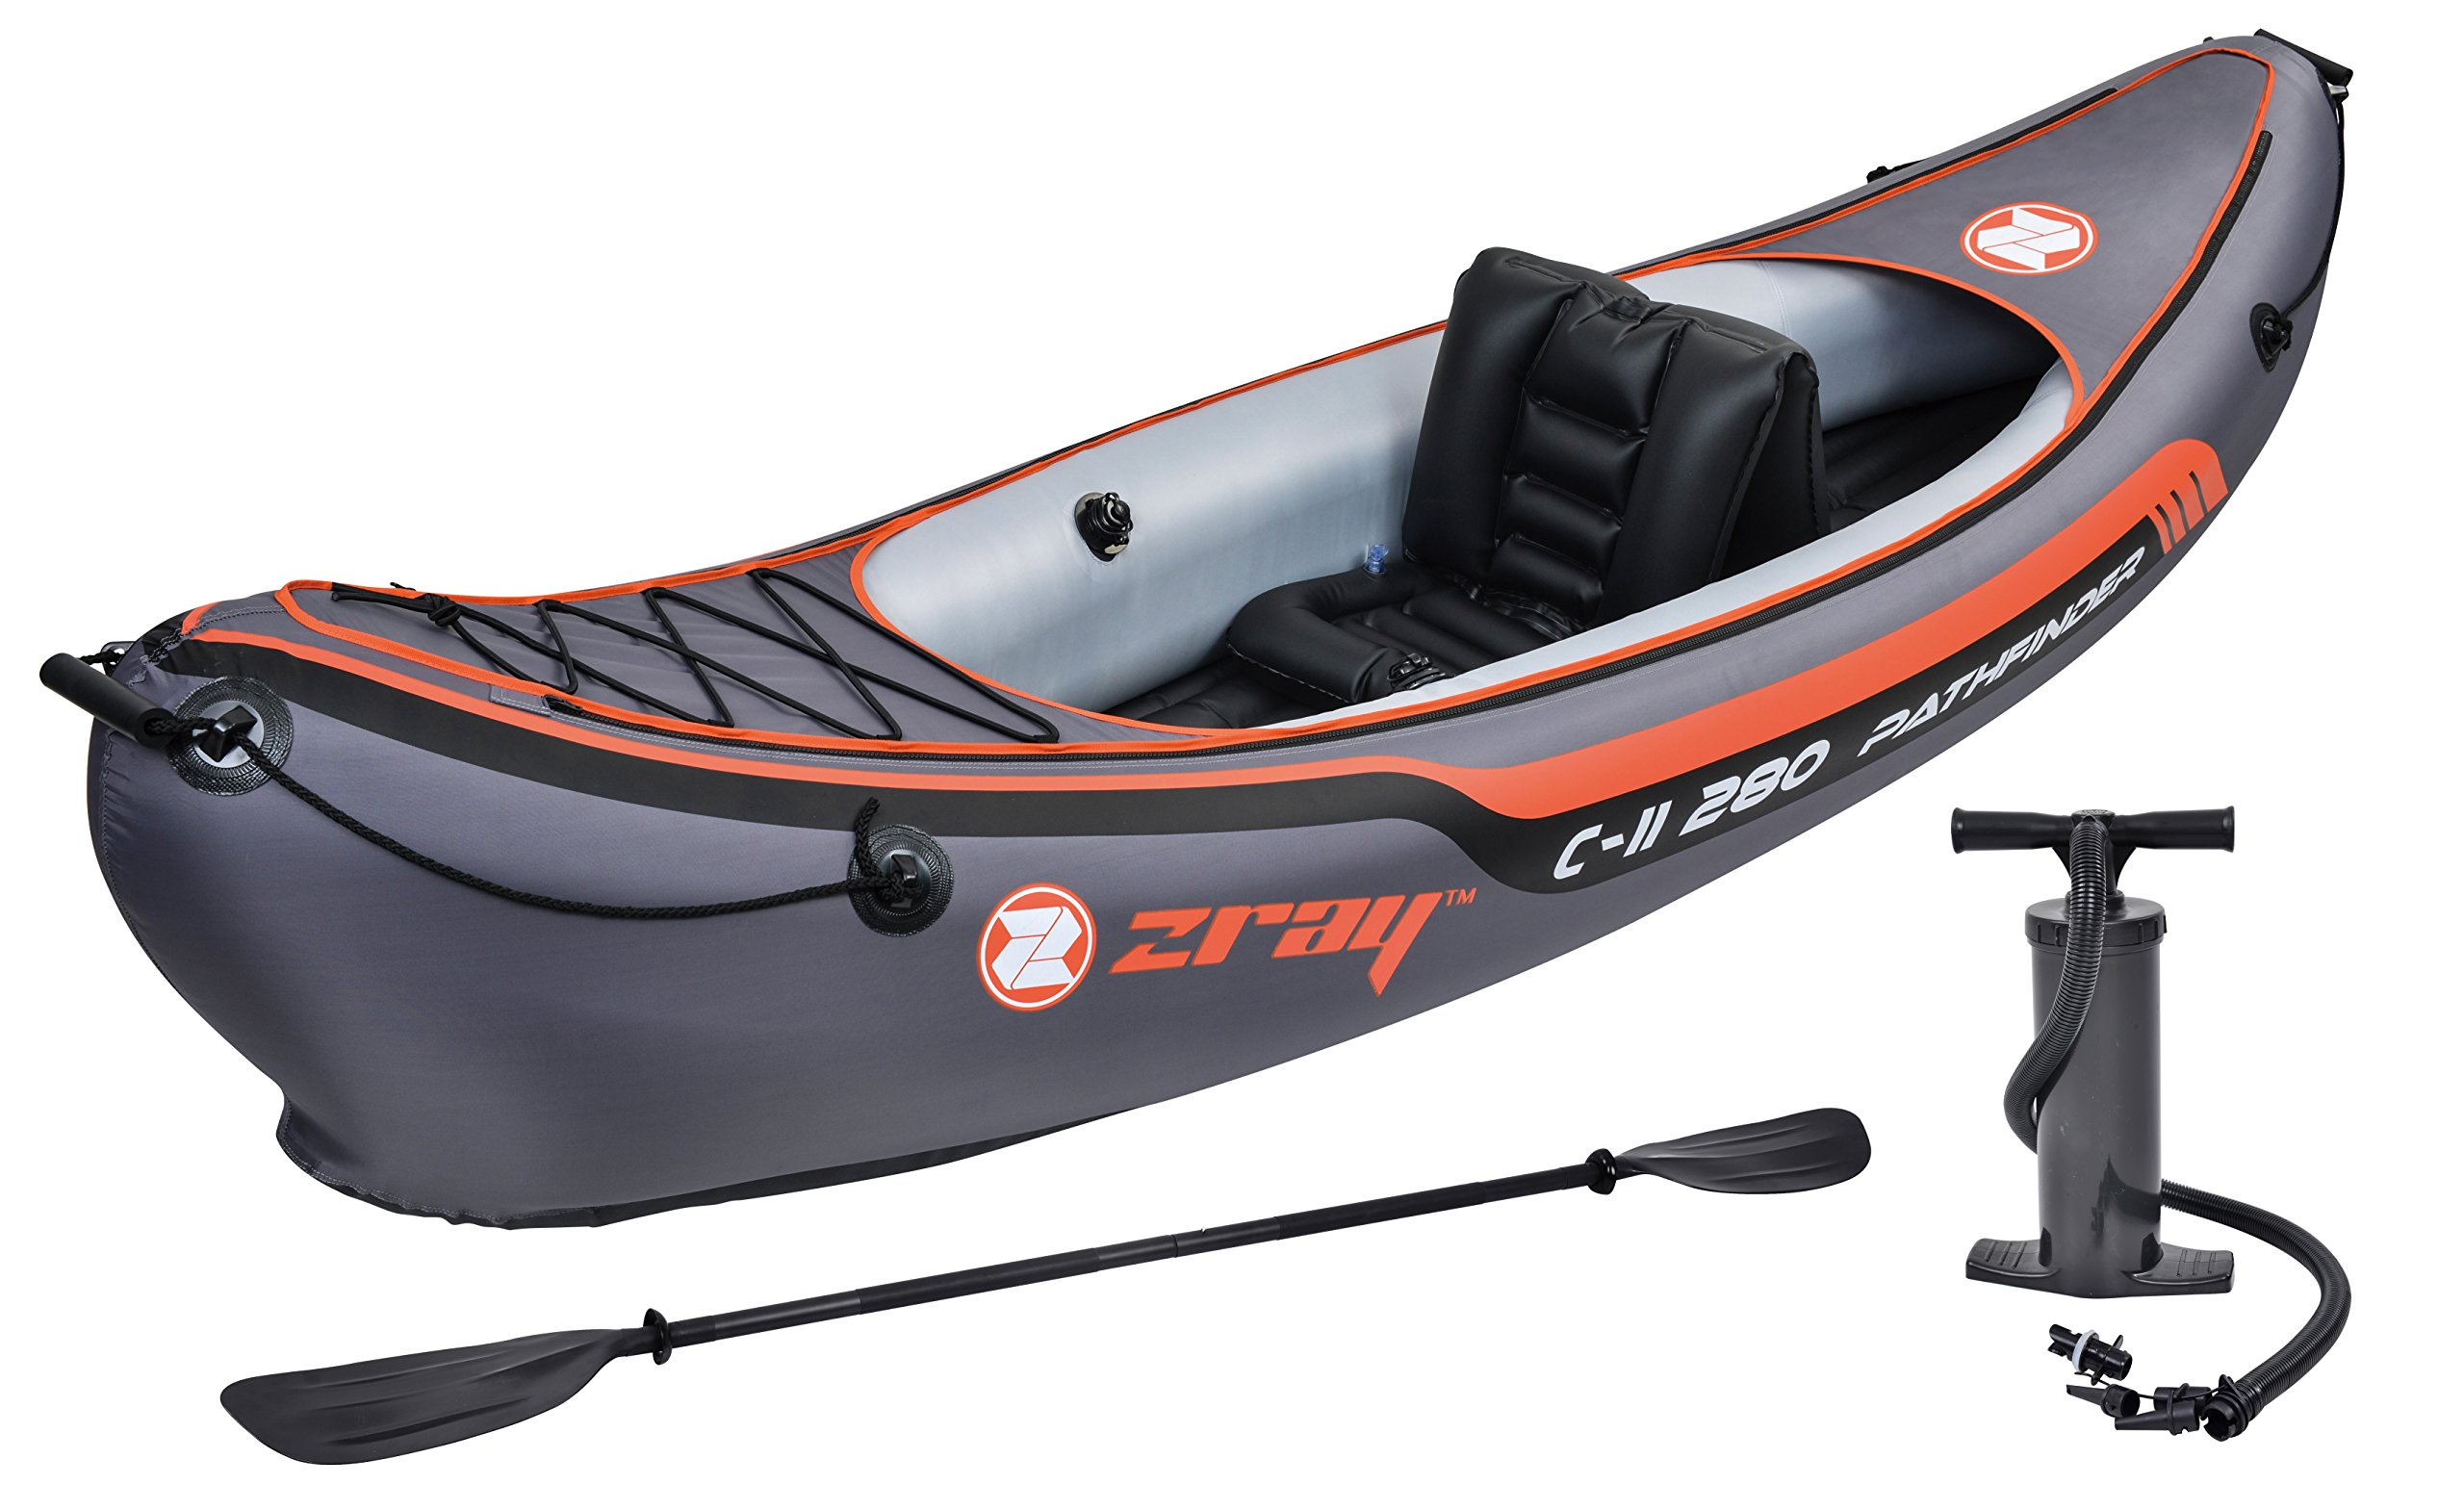 Z-Ray Pathfinder C-II 280 1-Person Inflatable Kayak by Zray